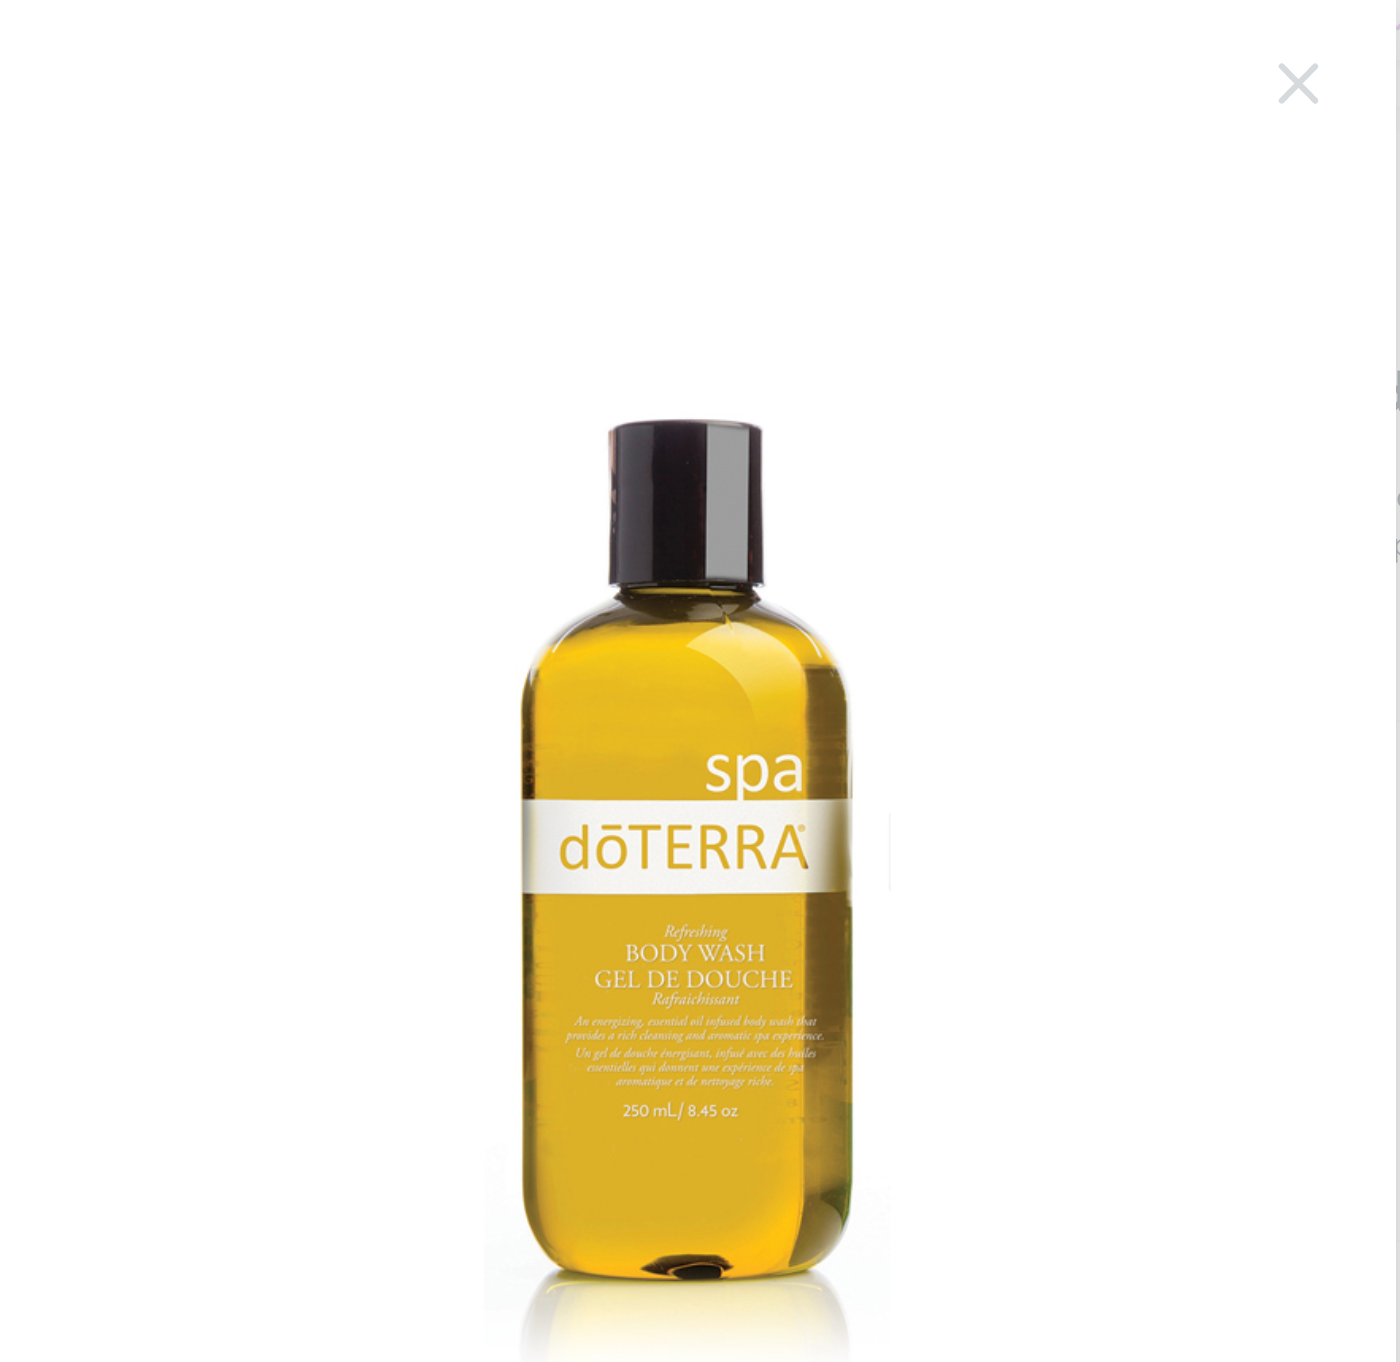 Refreshing Body Wash - doTerra